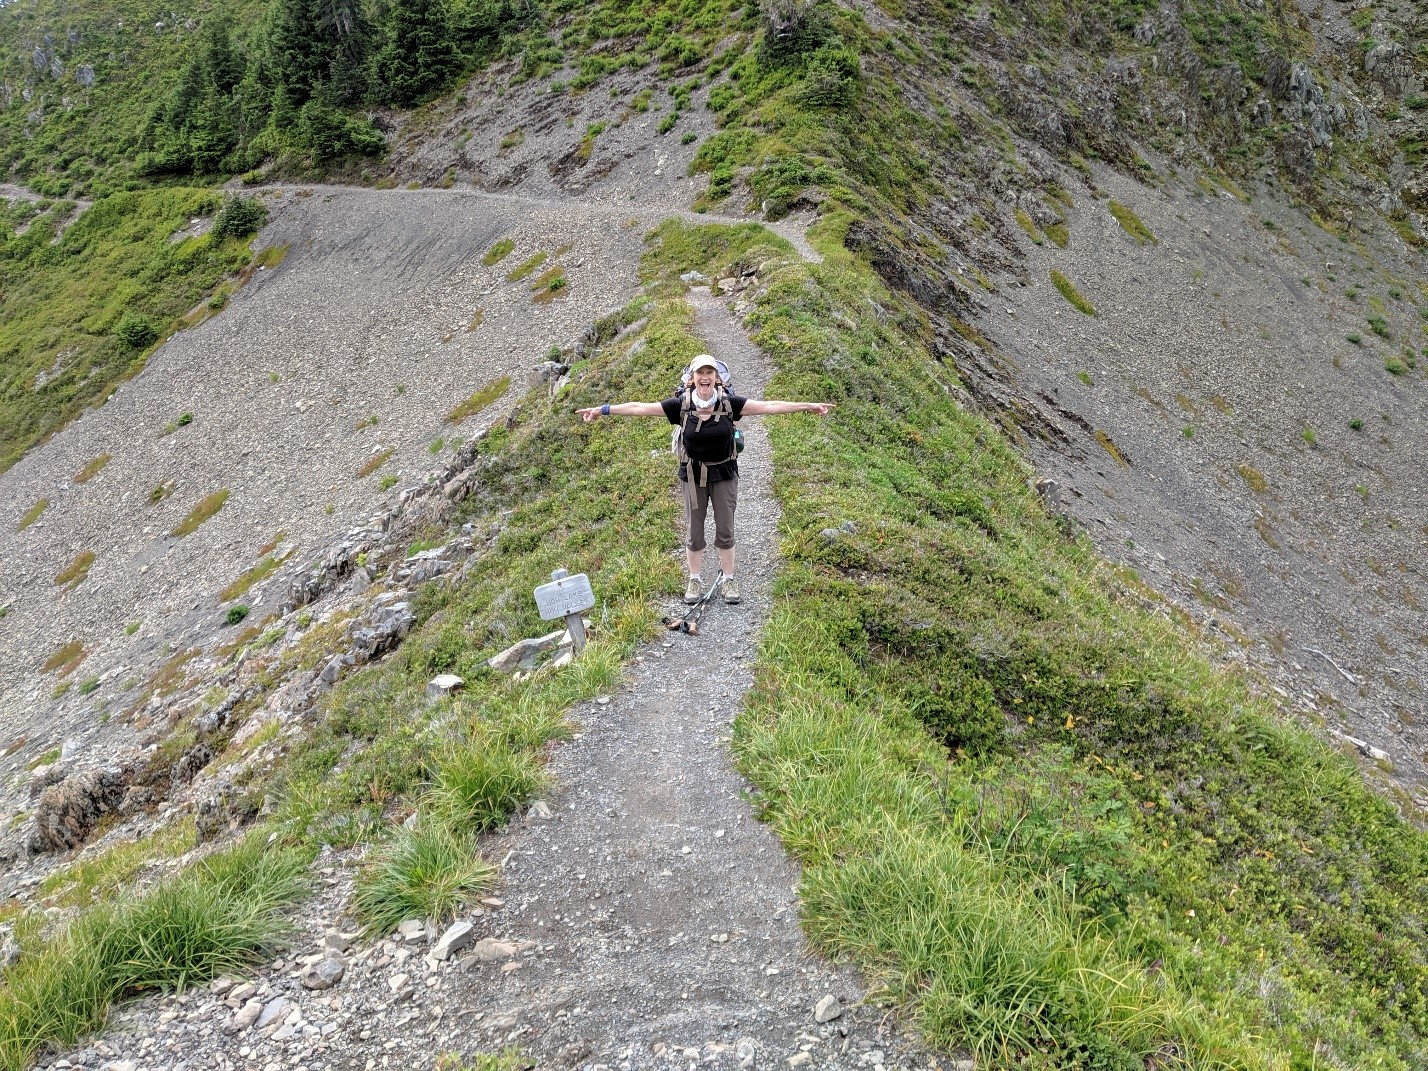 Trisha Wirta walking on a trail separating Bgoachiel and the Hoh rain forest.